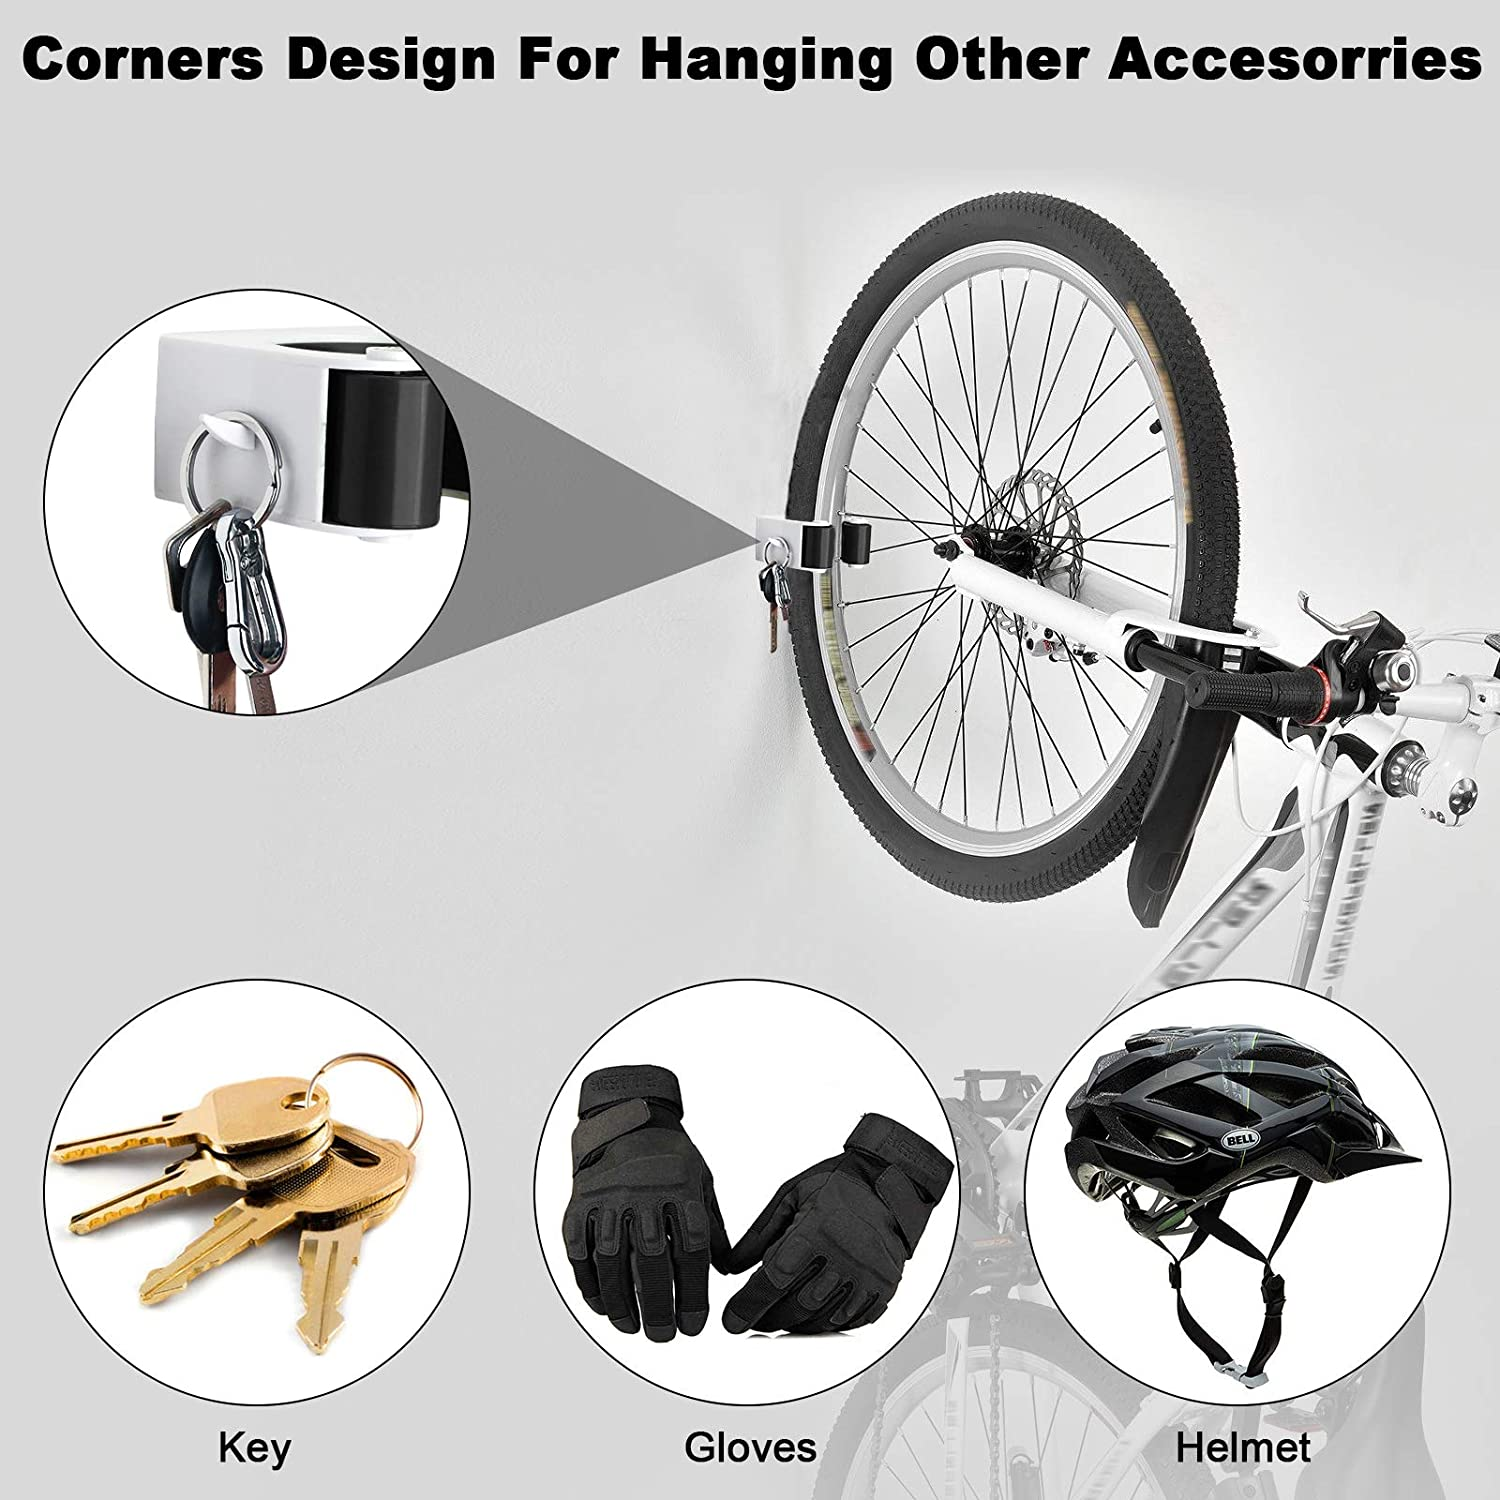 Linkstyle 2-Pack Compact Bike Clip Indoor Outdoor Bicycle Rack Storage System Bike Storage Parking Buckle Holder Wall Mount Hook Bicycle Parking for Home /& Garage